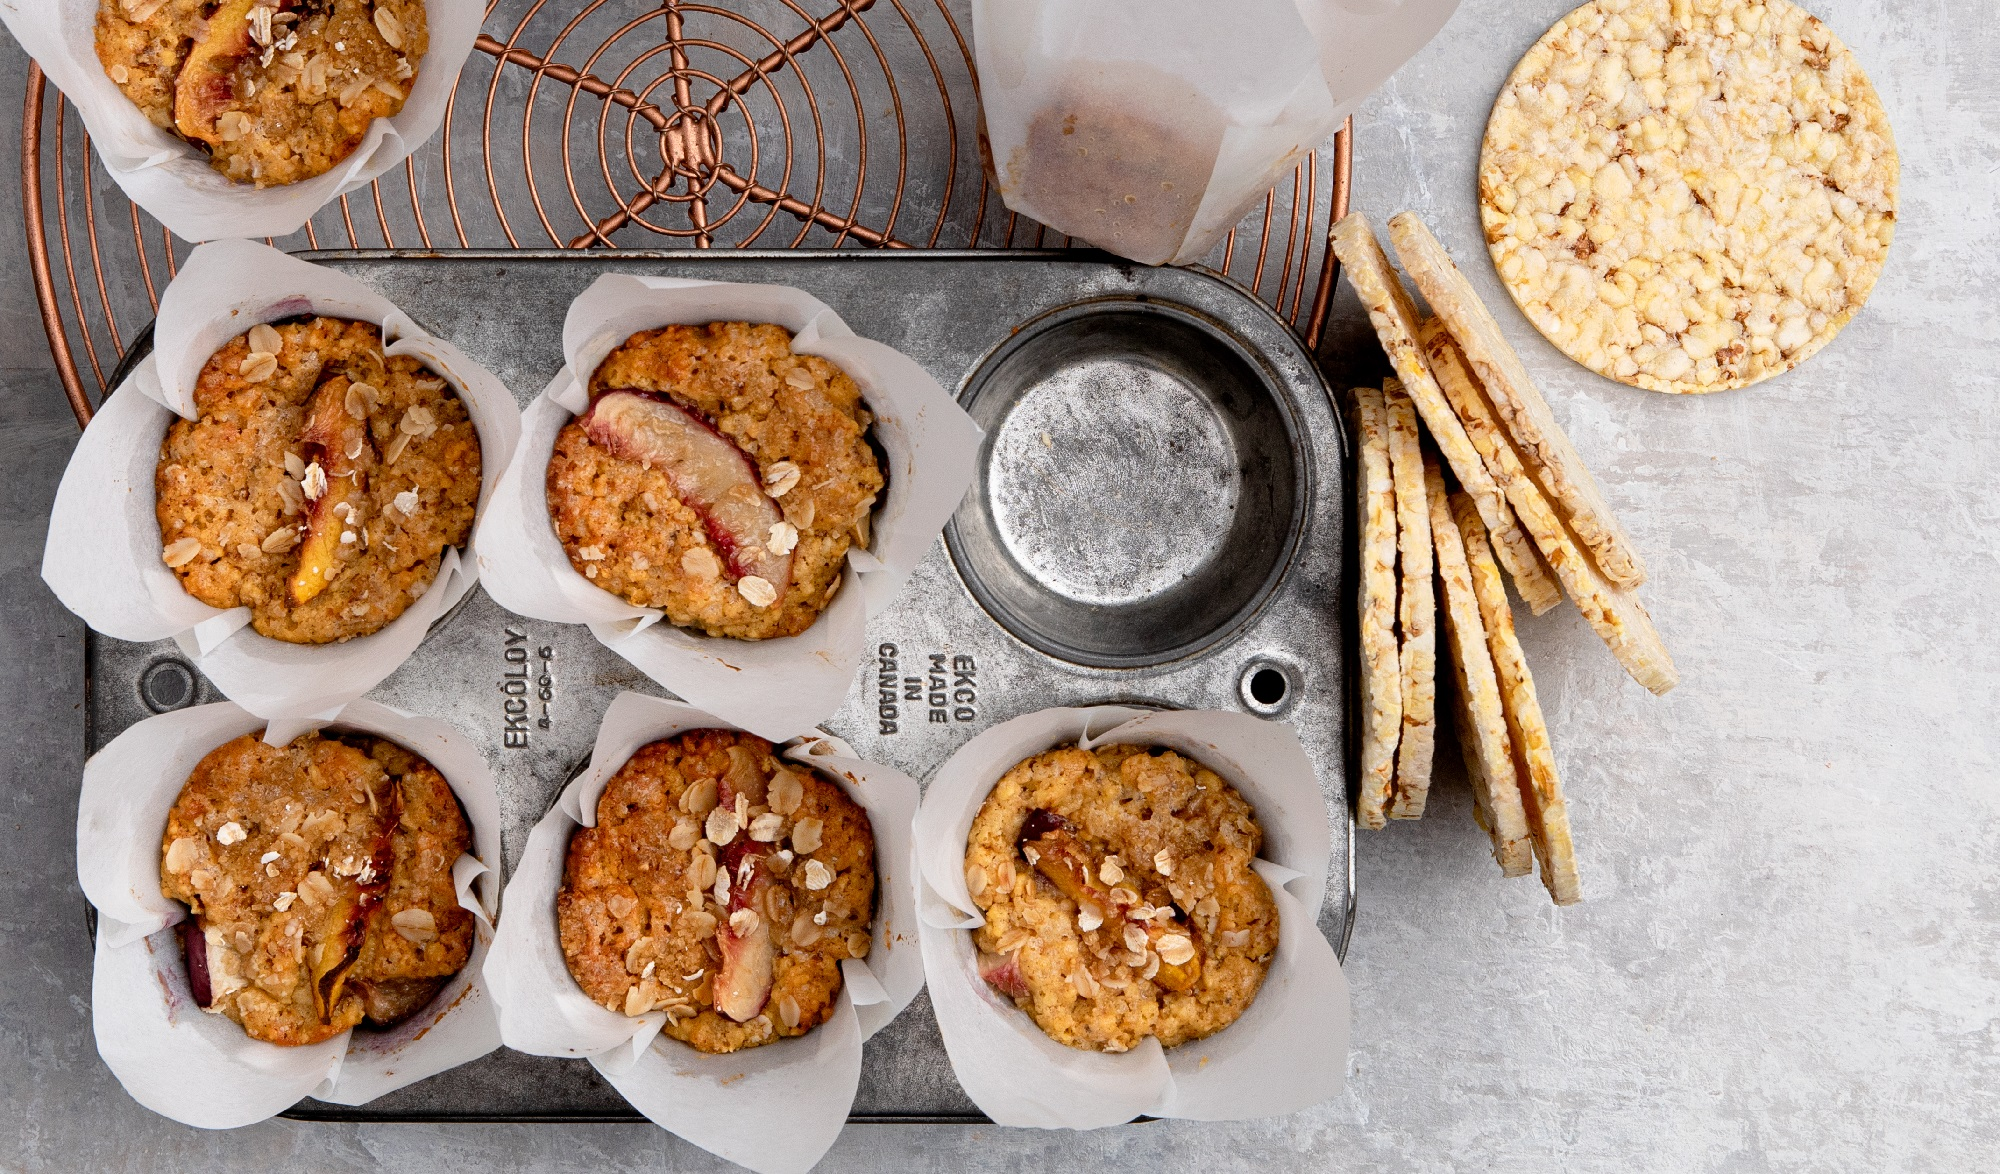 Gluten free nectarine & Brown sugar muffins using CORN THINS slices